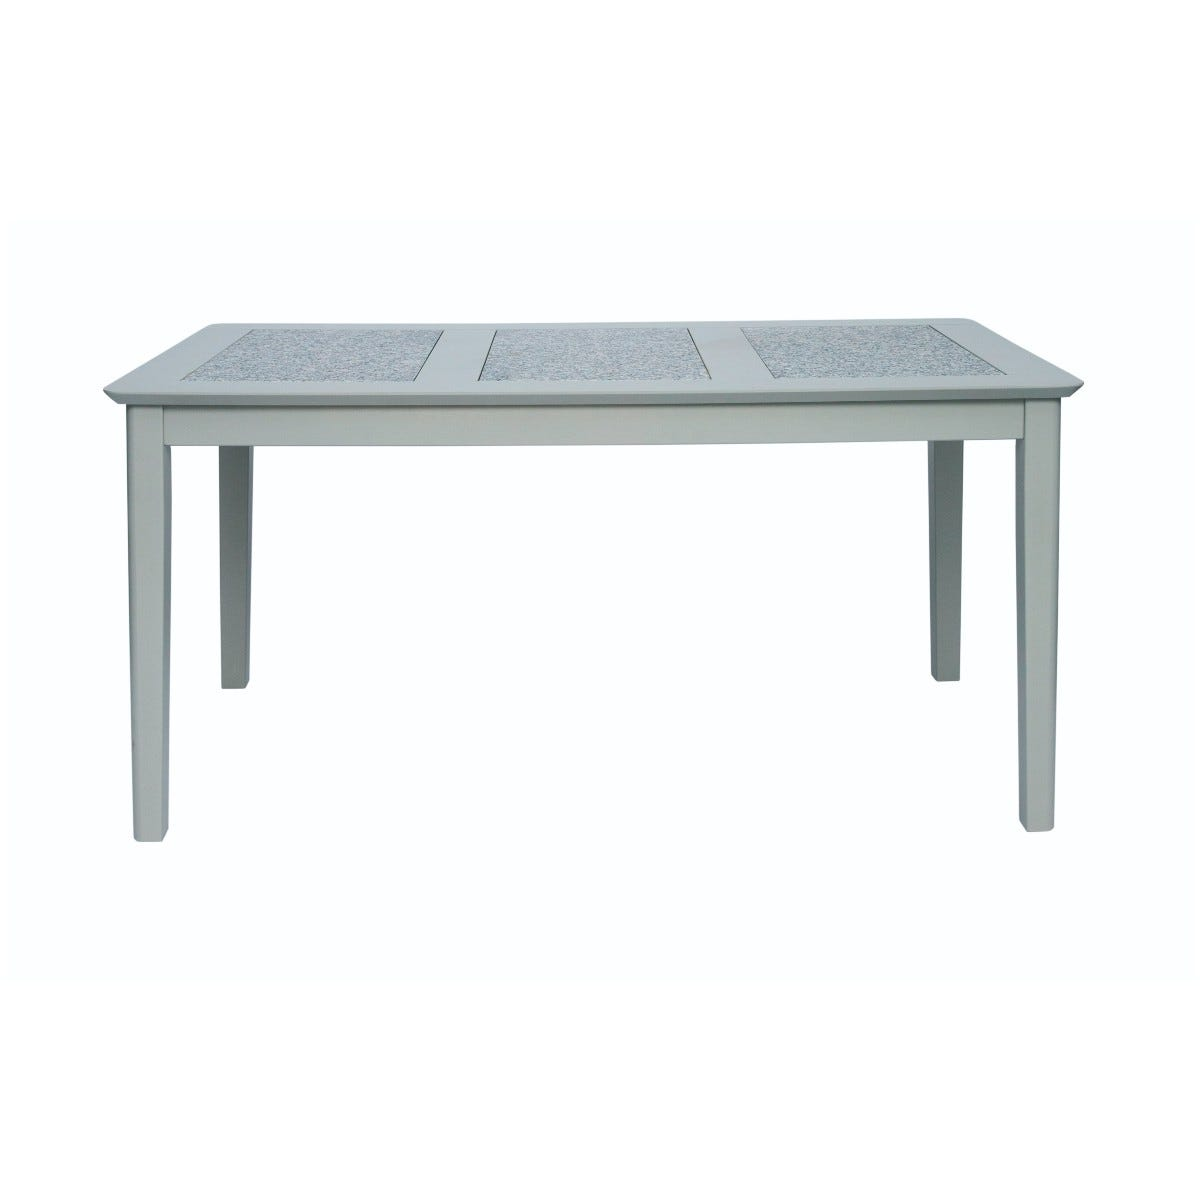 Core Products Perth 150cm Rectangular Dining Table Stone Inset Grey